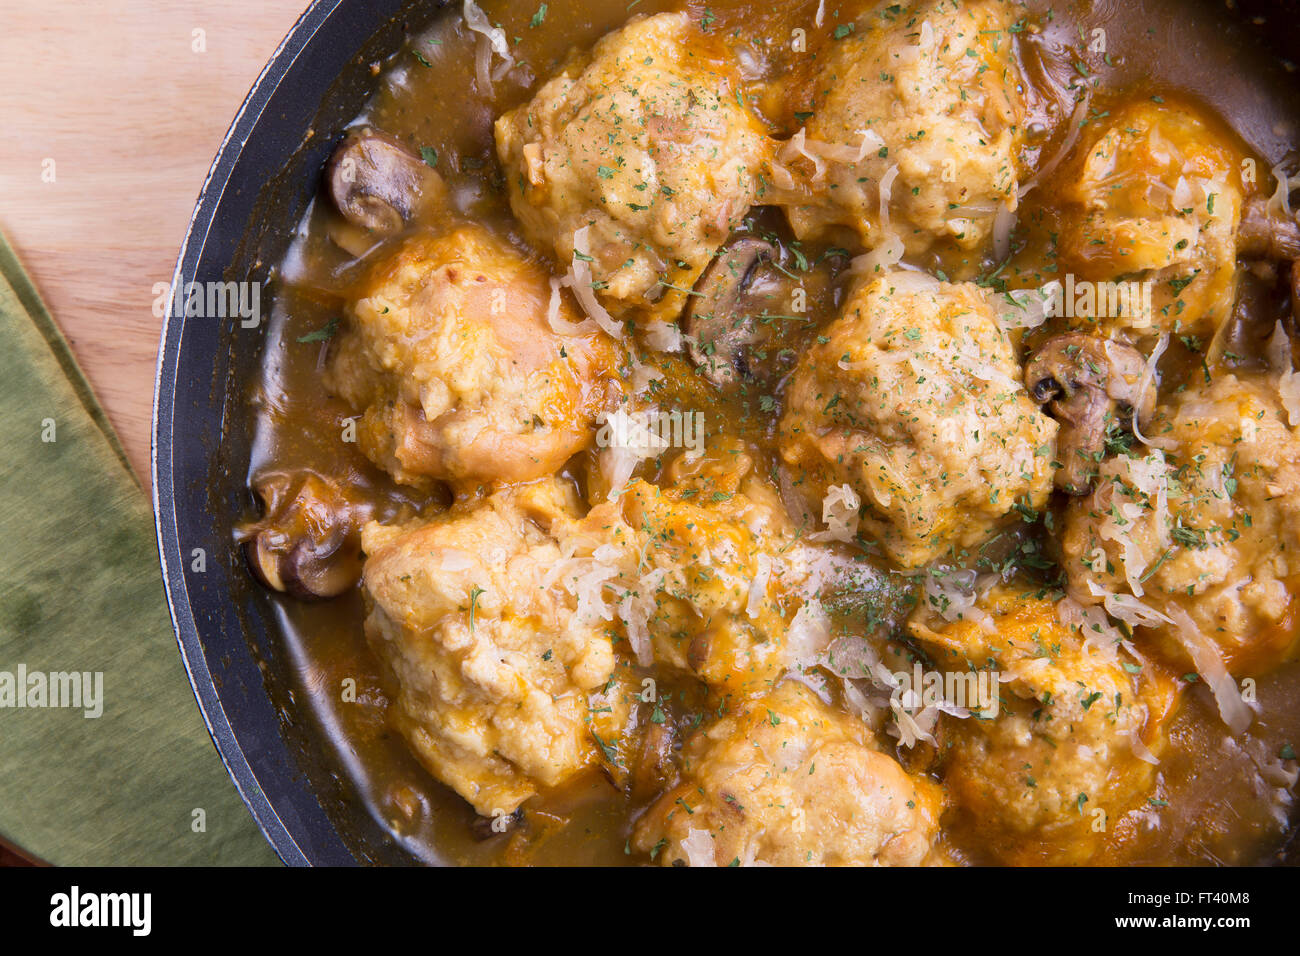 Fresh Bavarian bread dumplings with mushroom gravy sauce. - Stock Image